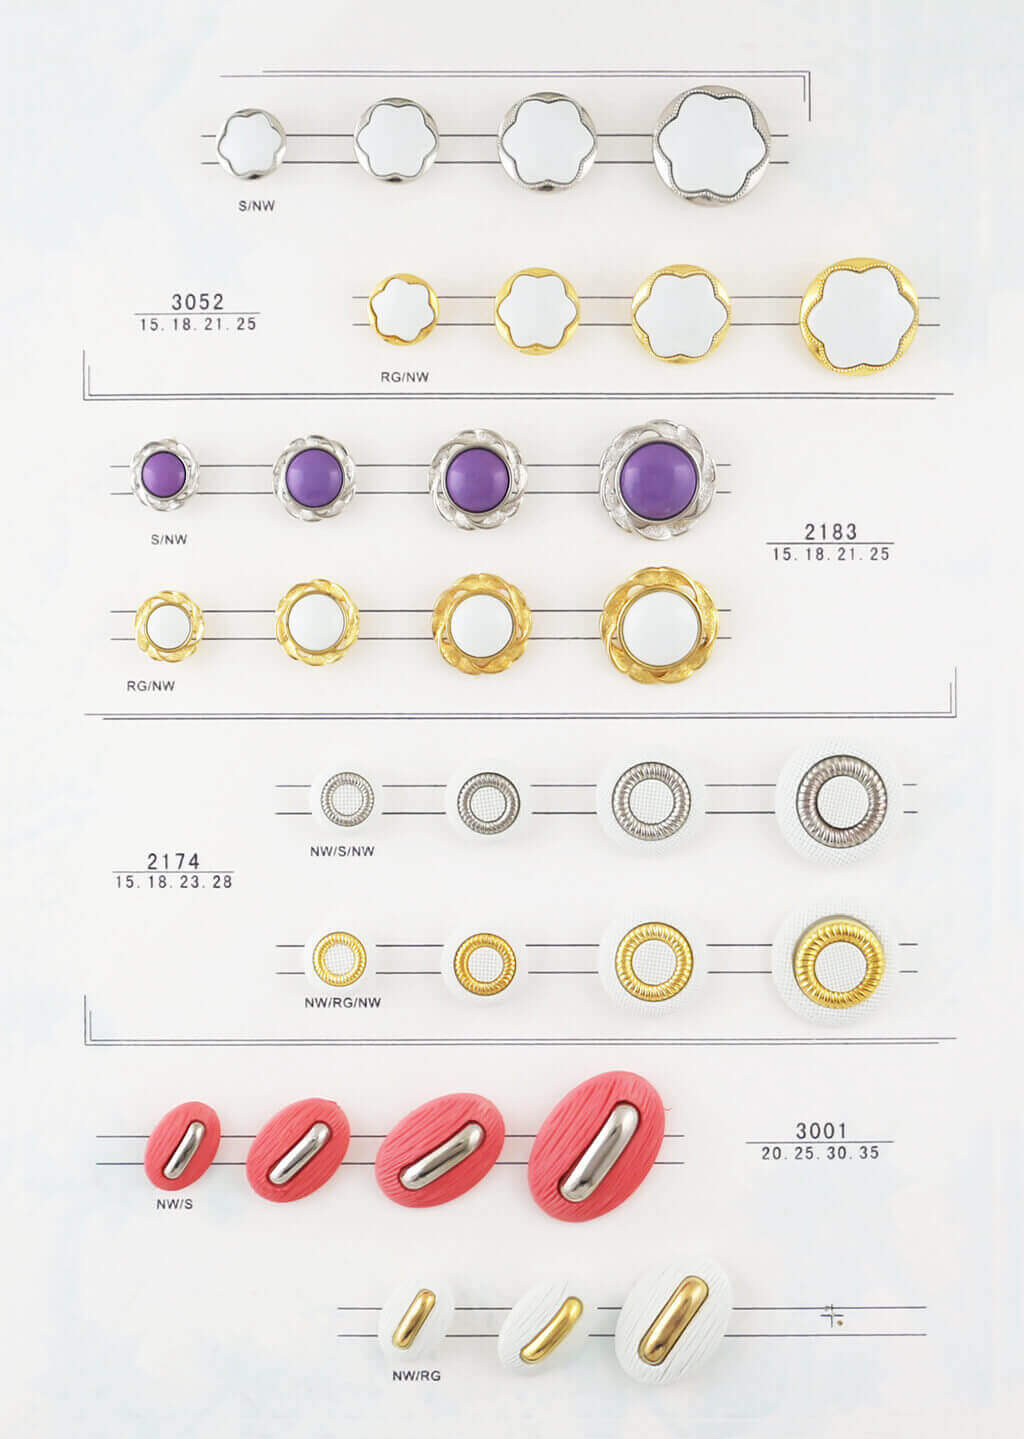 decorative buttons catalogue, combined buttons catalogue from SUNMEI